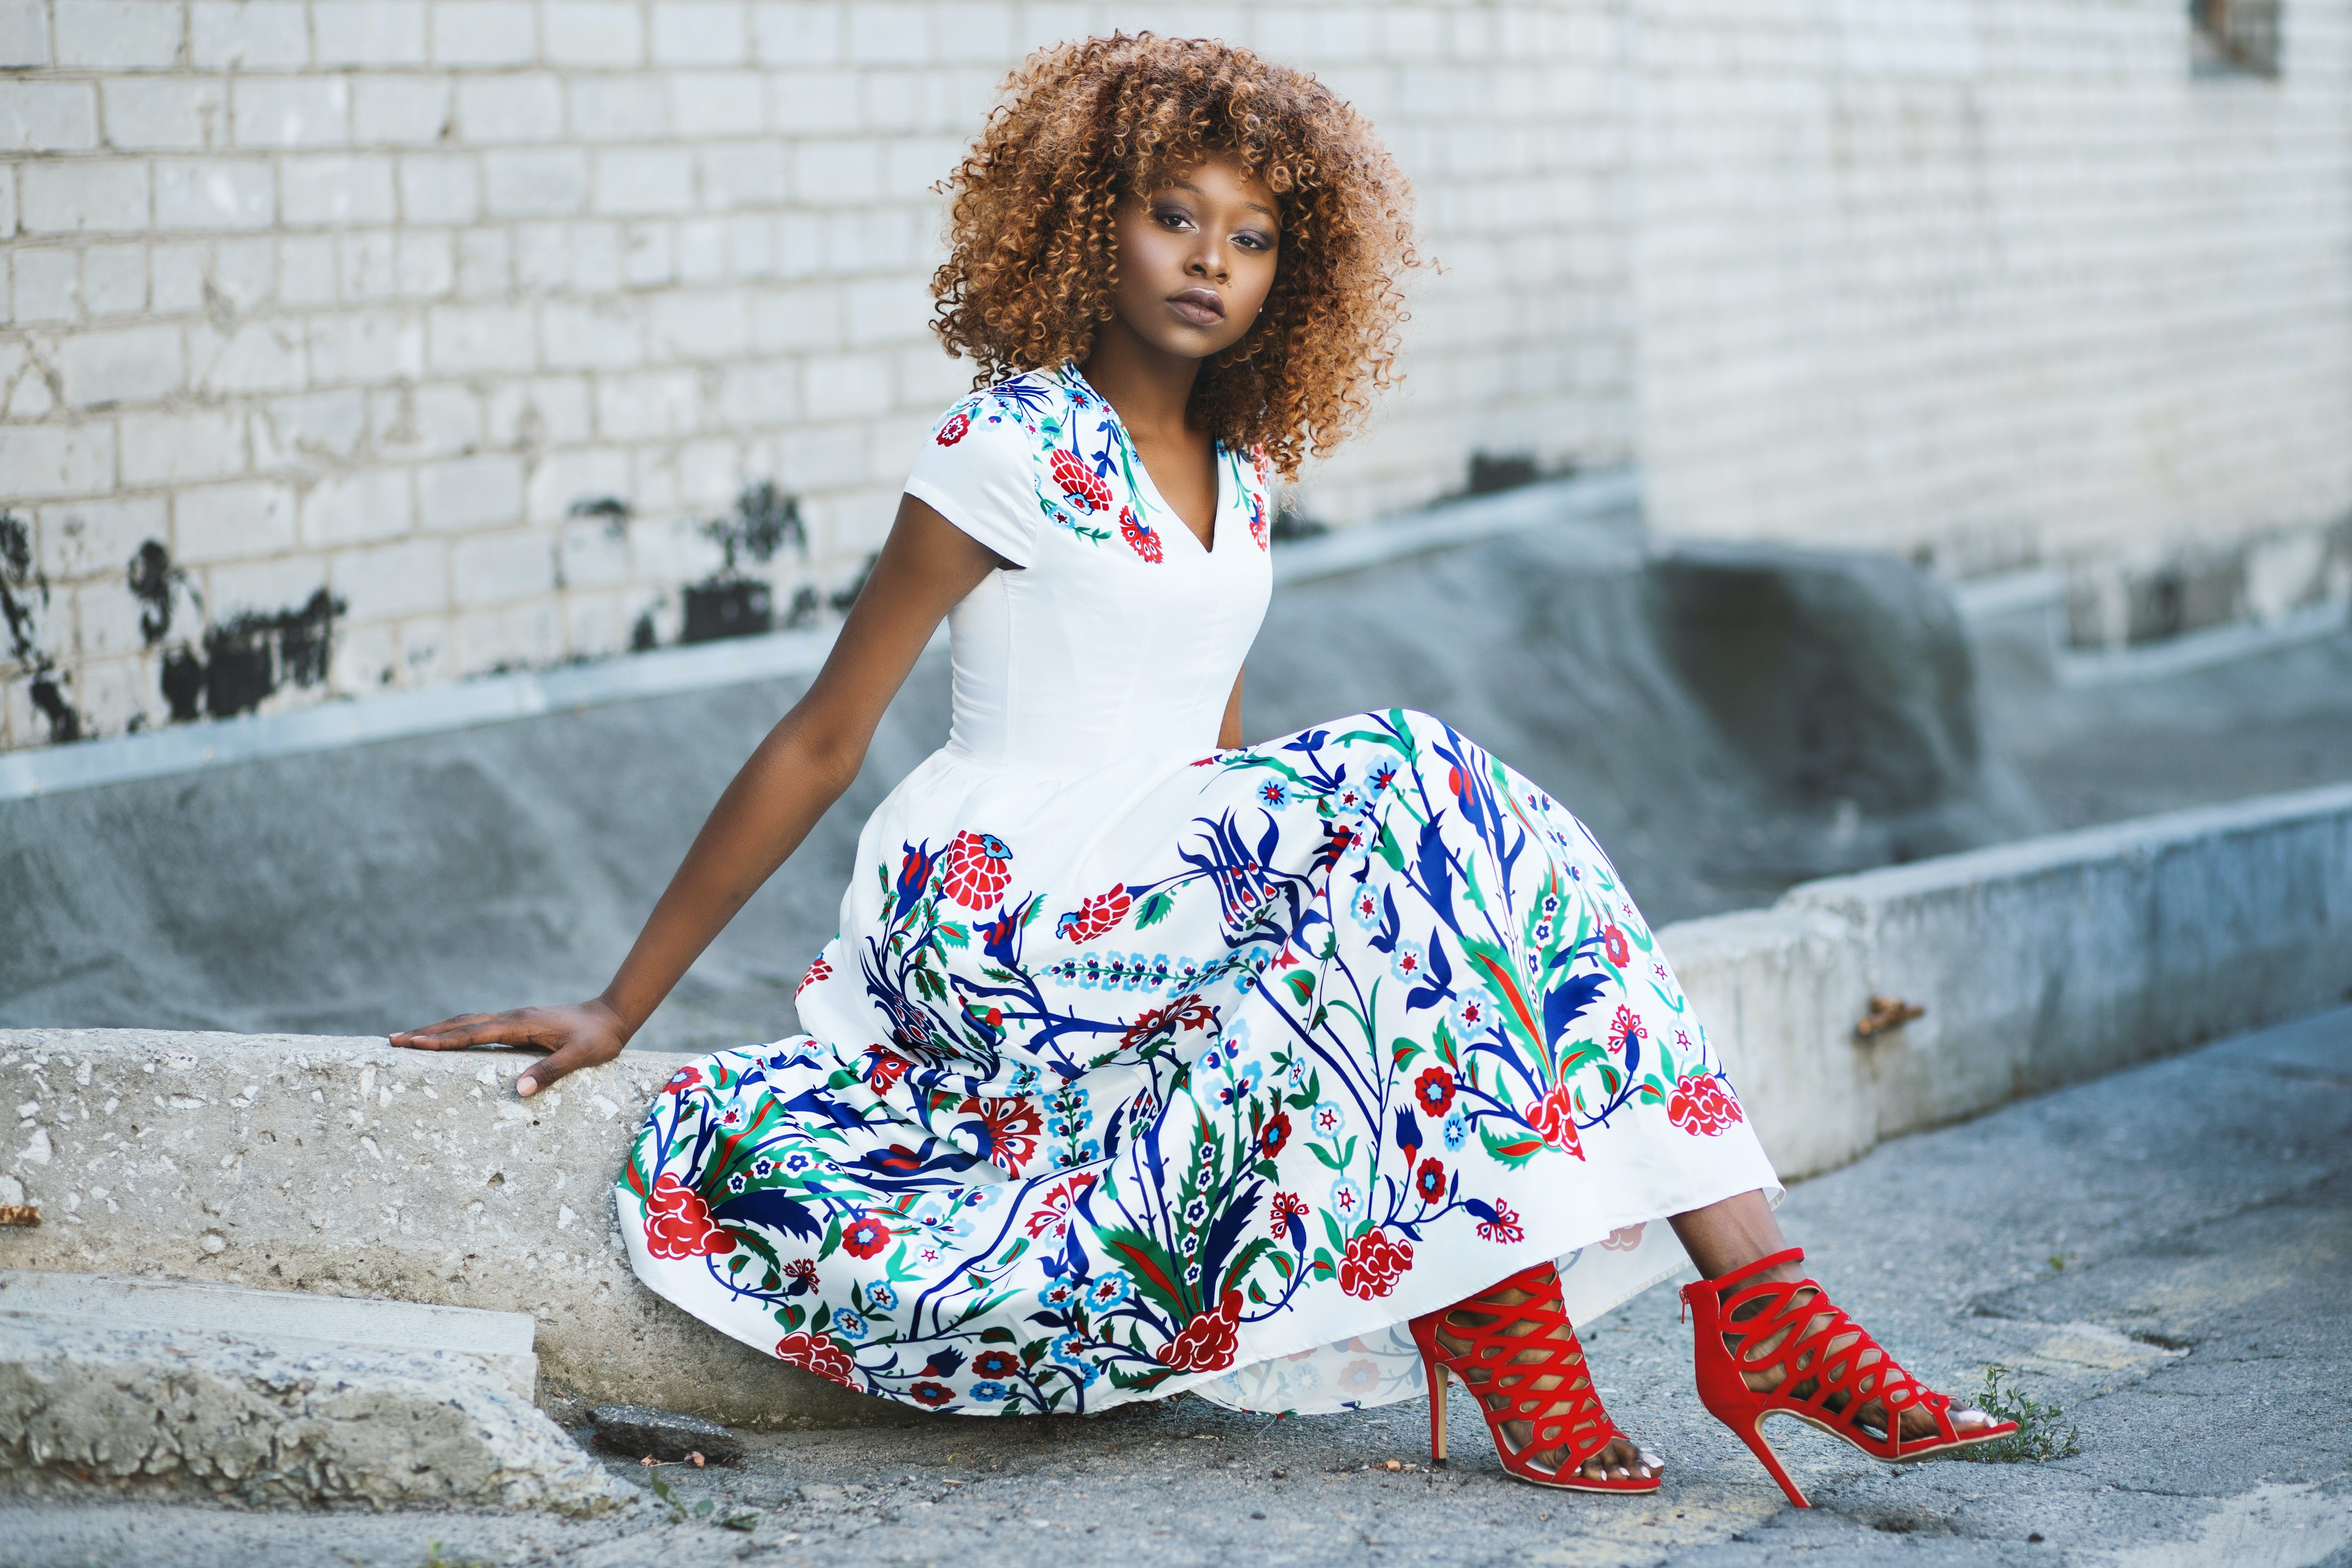 Woman in White and Multicolored Floral Flare Dress Sitting on Concrete